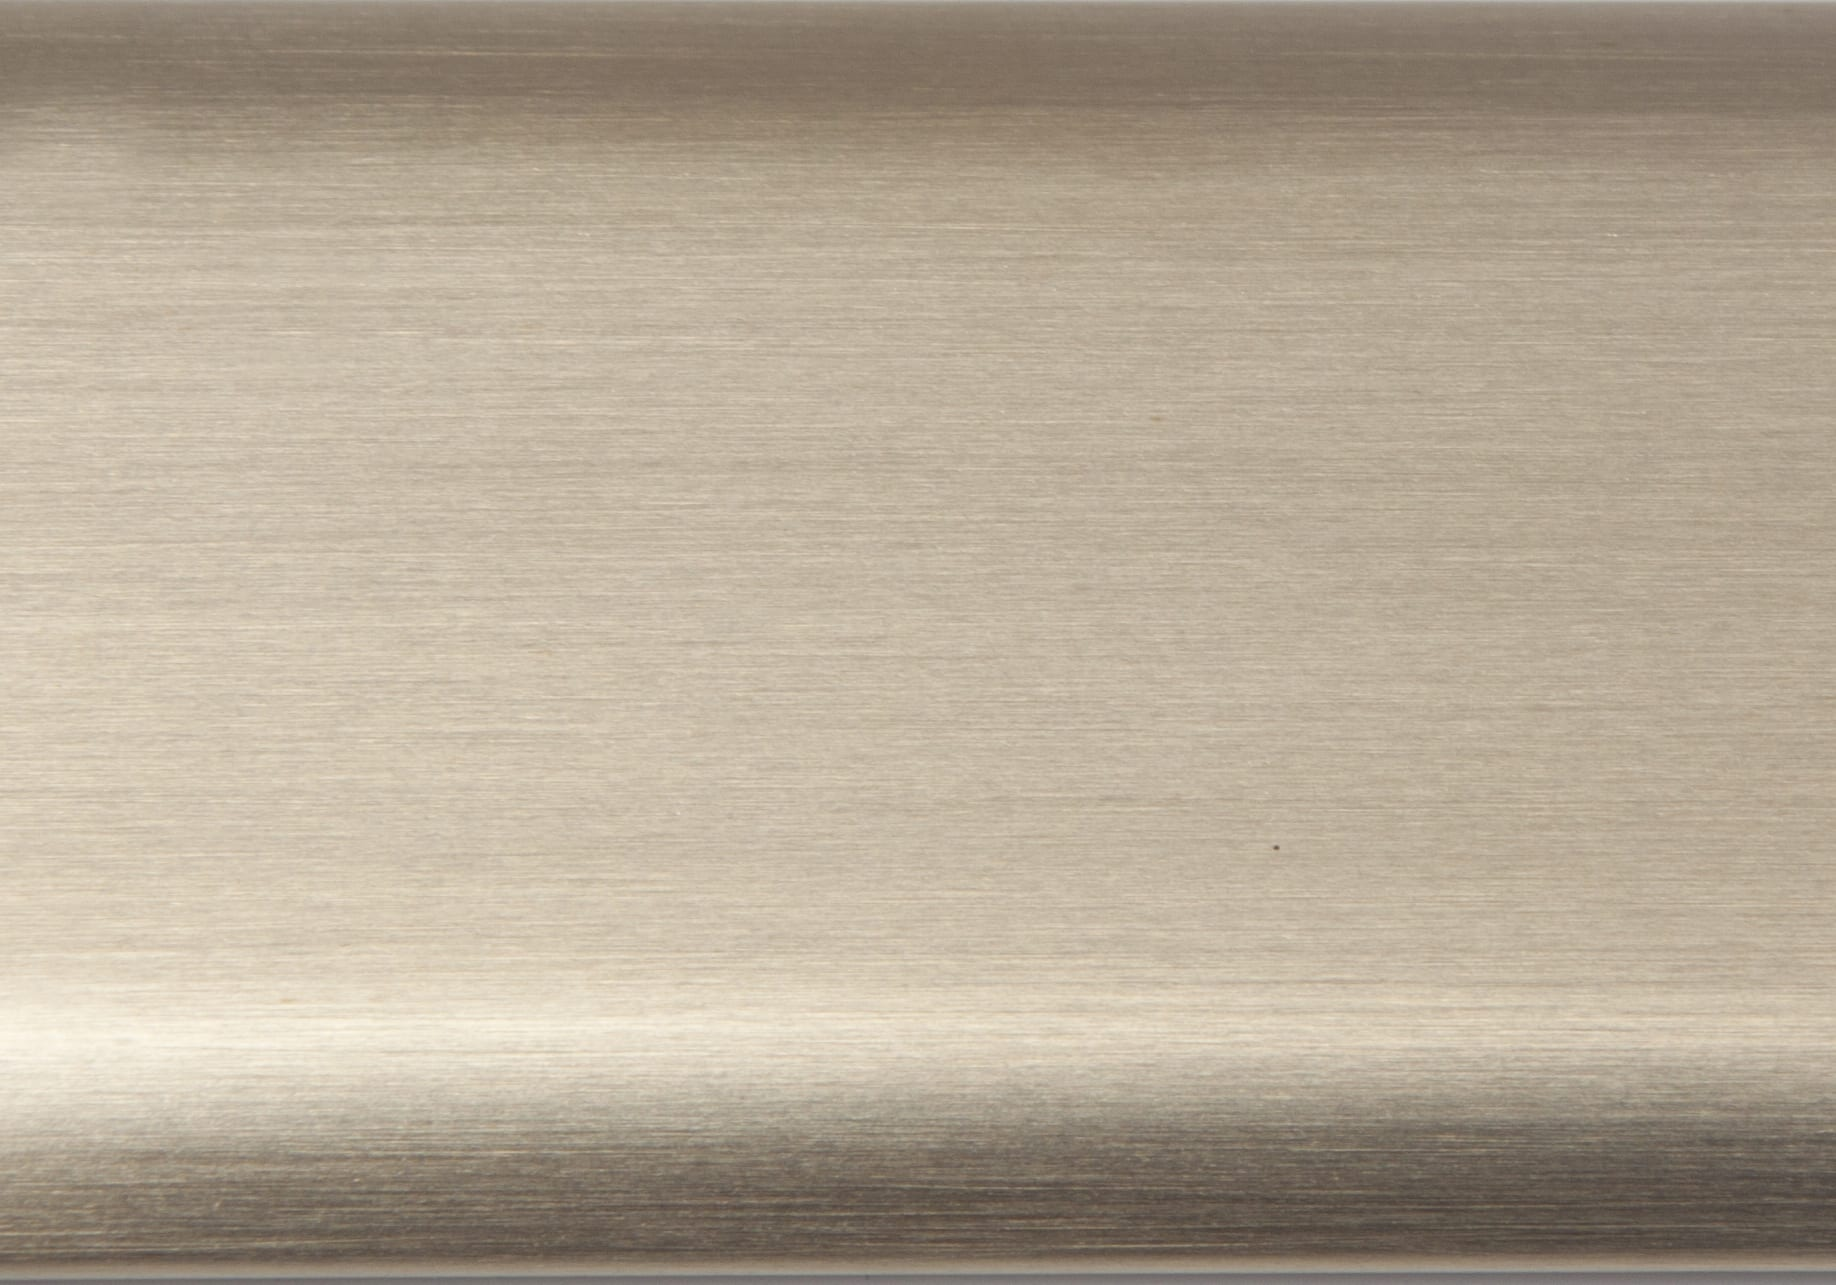 Satin Brass door thresholds